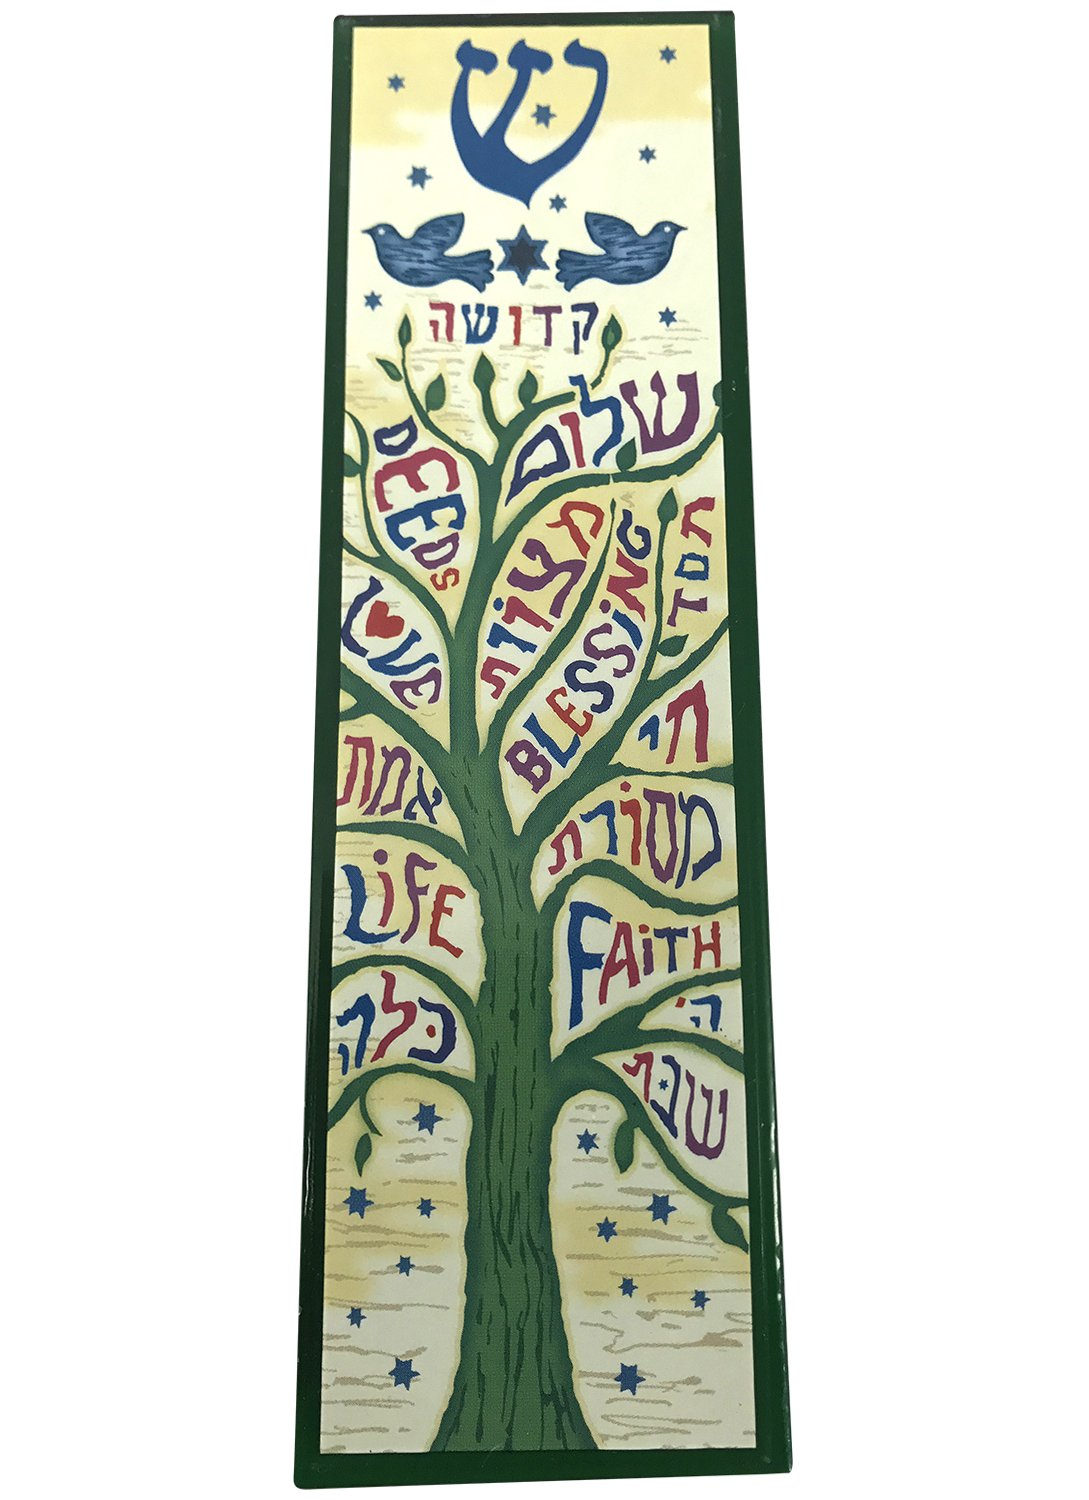 EASY MOUNT Tree of Life Art Glass Mezuzah, GIFT BOX and Non-Kosher Scroll INCLUDED. Great Mezuzah for Bar or Bat Mitzvah Gift, Wedding, House Warming or Enjoy in Your Home! Tamara Baskin Art Glass SW11